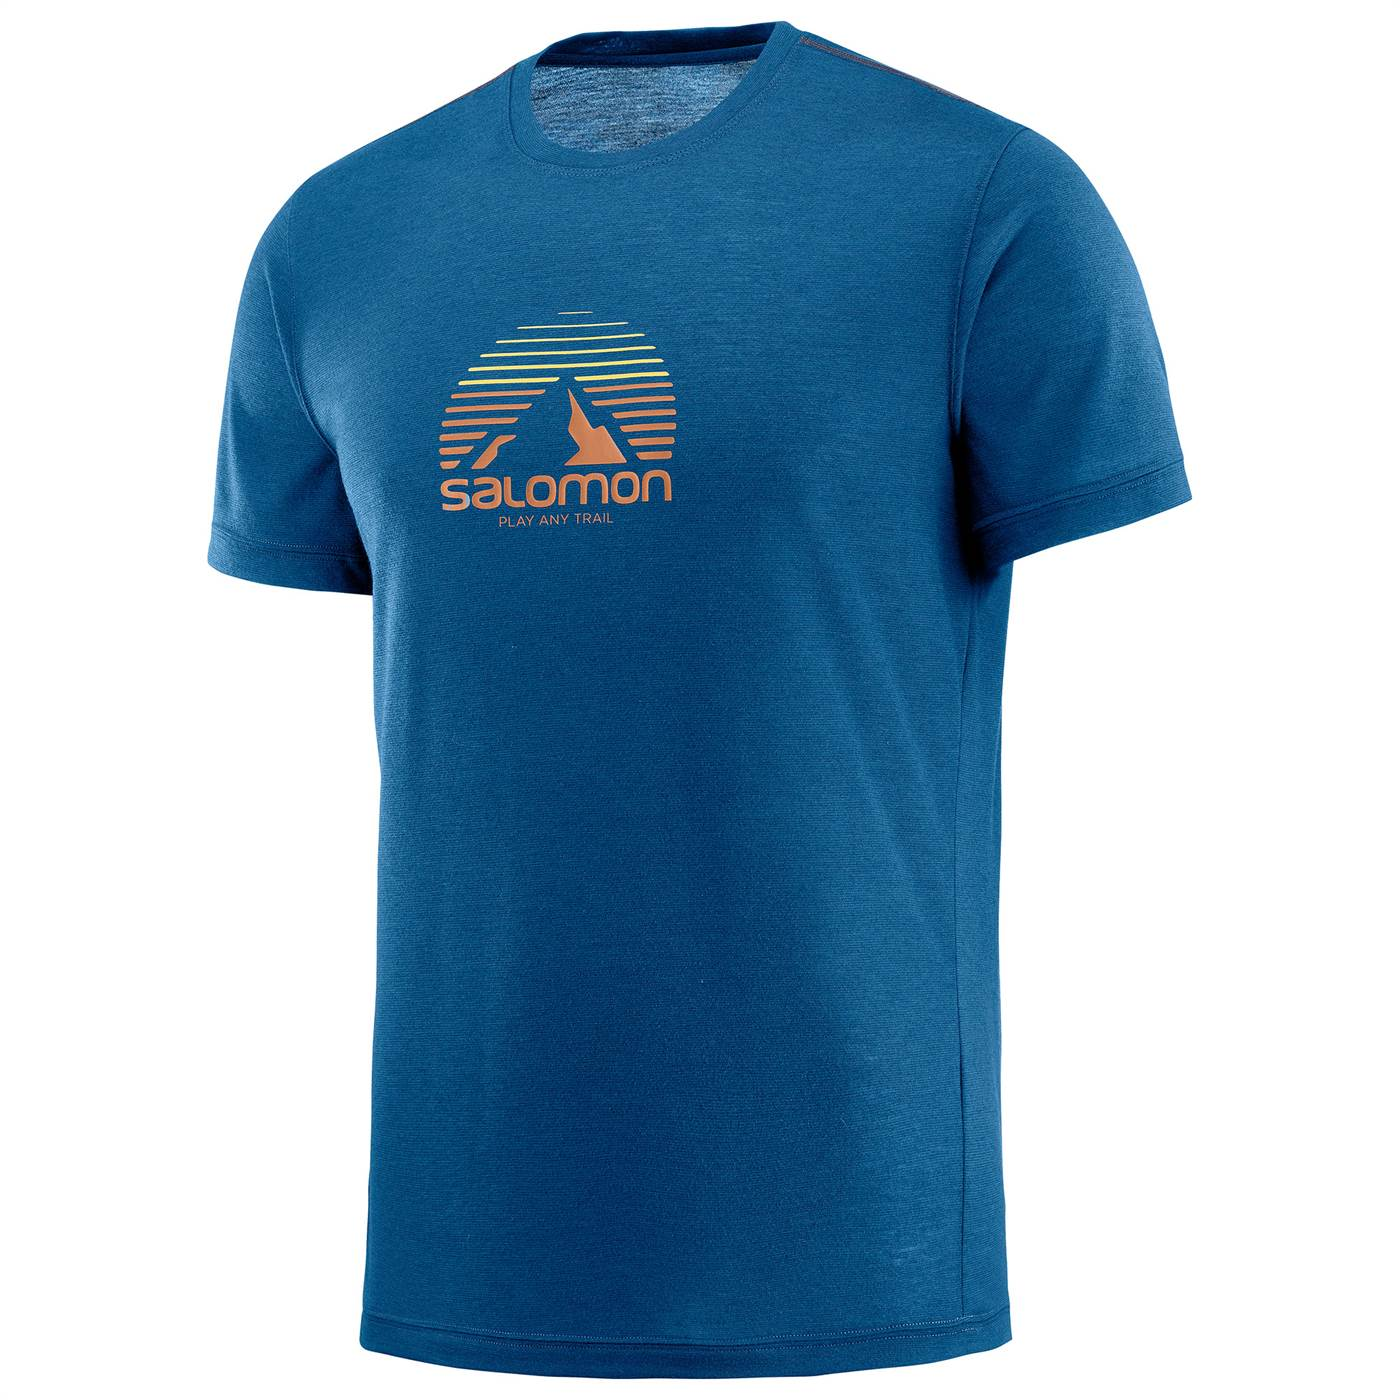 Explore Graphic Tee Short Sleeve Poseidon - Men's